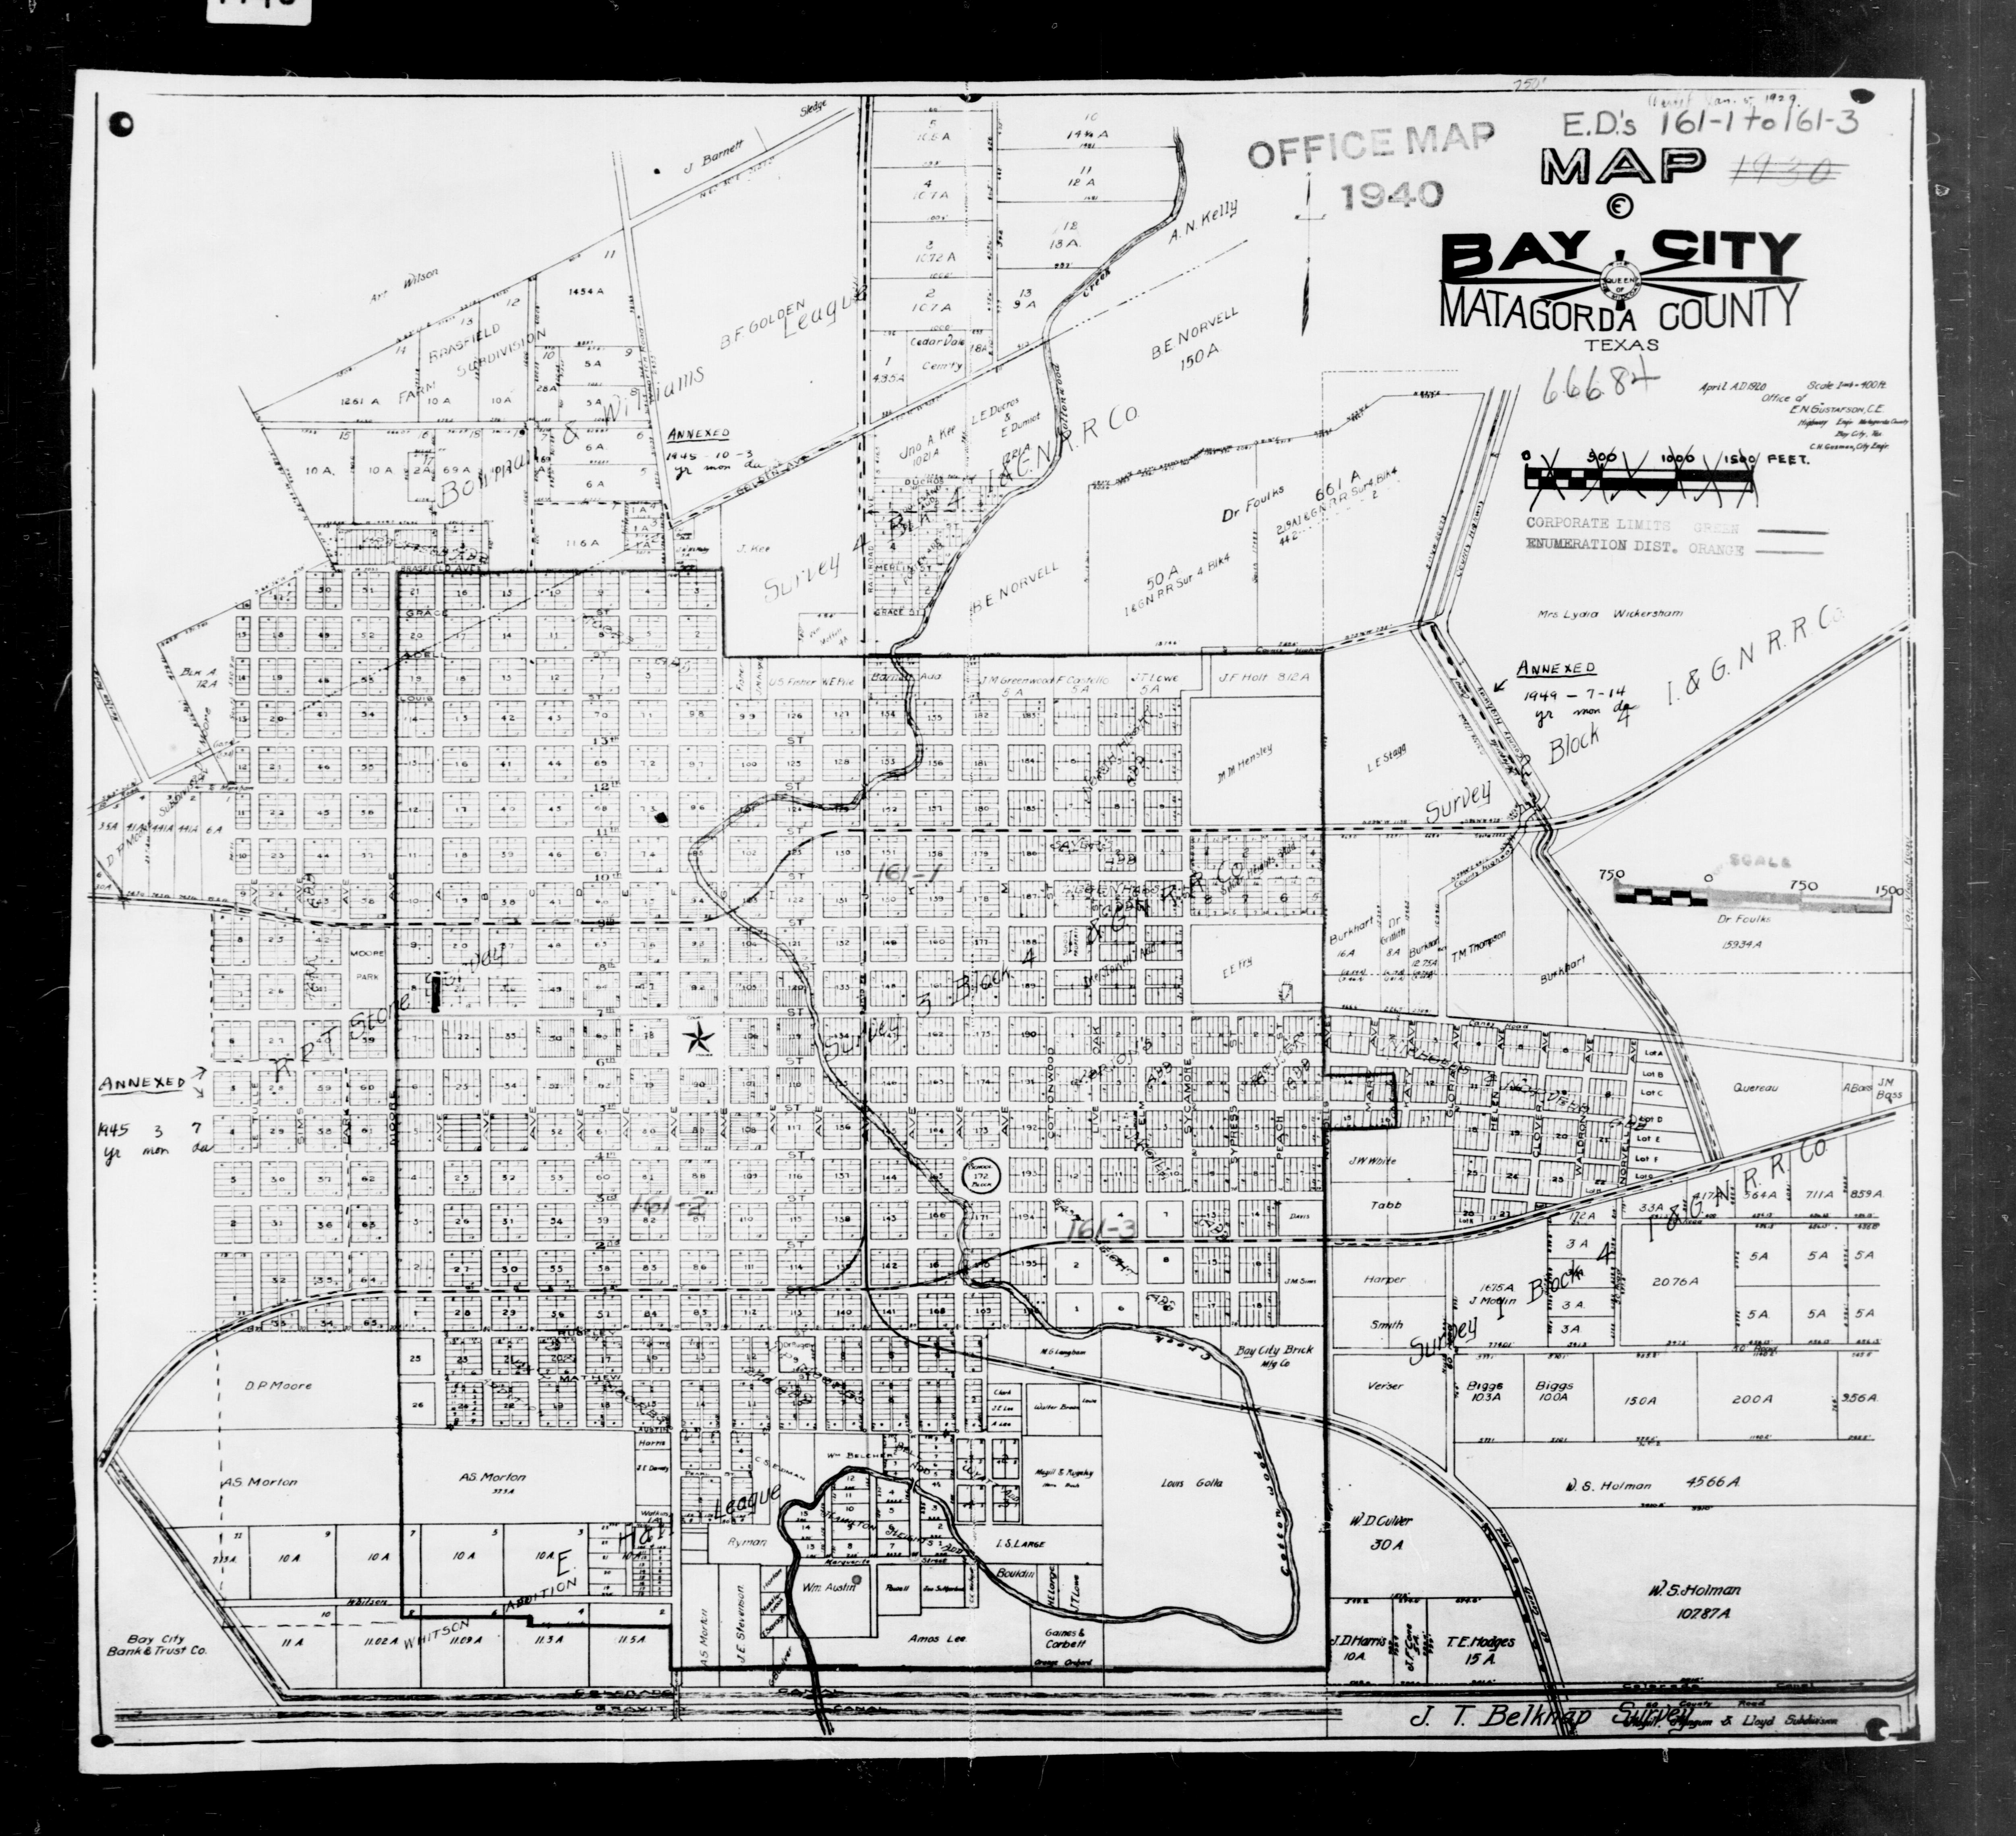 1940 Census Texas Enumeration District Maps - Perry-Castañeda Map